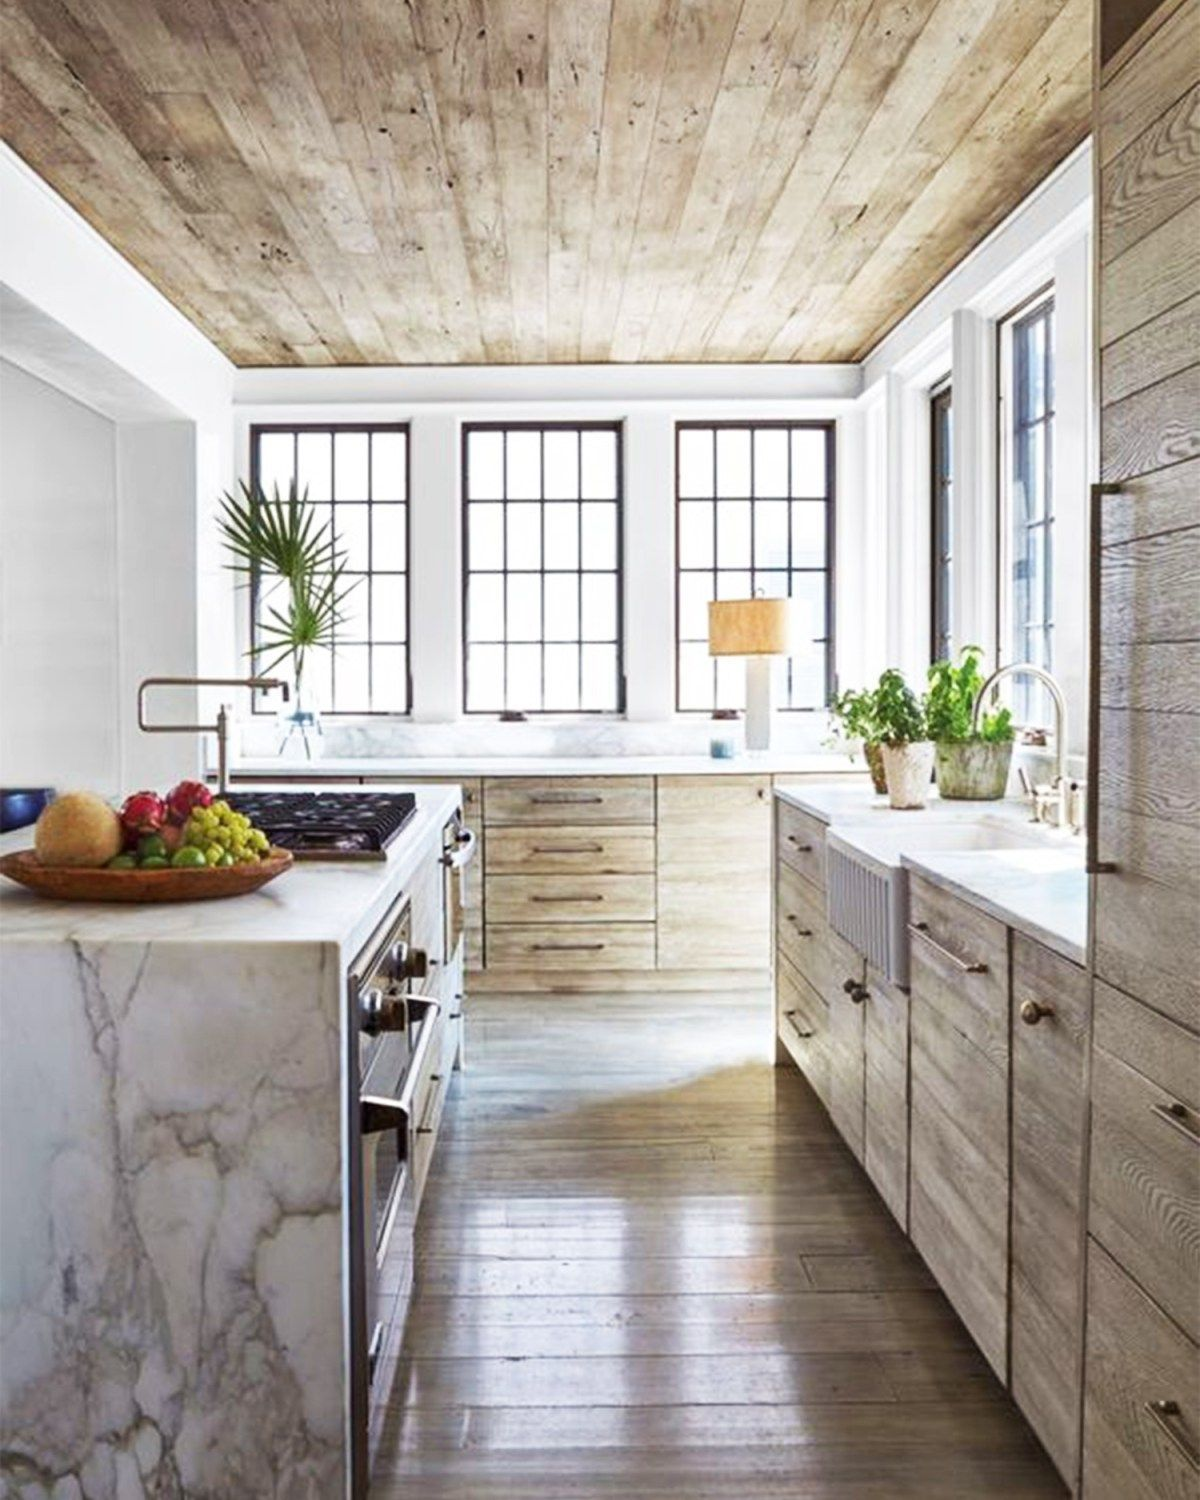 33 Modern Style Cozy Wooden Kitchen Design Ideas: The Best Rustic Wood Ceilings! How To Make A Home Feel